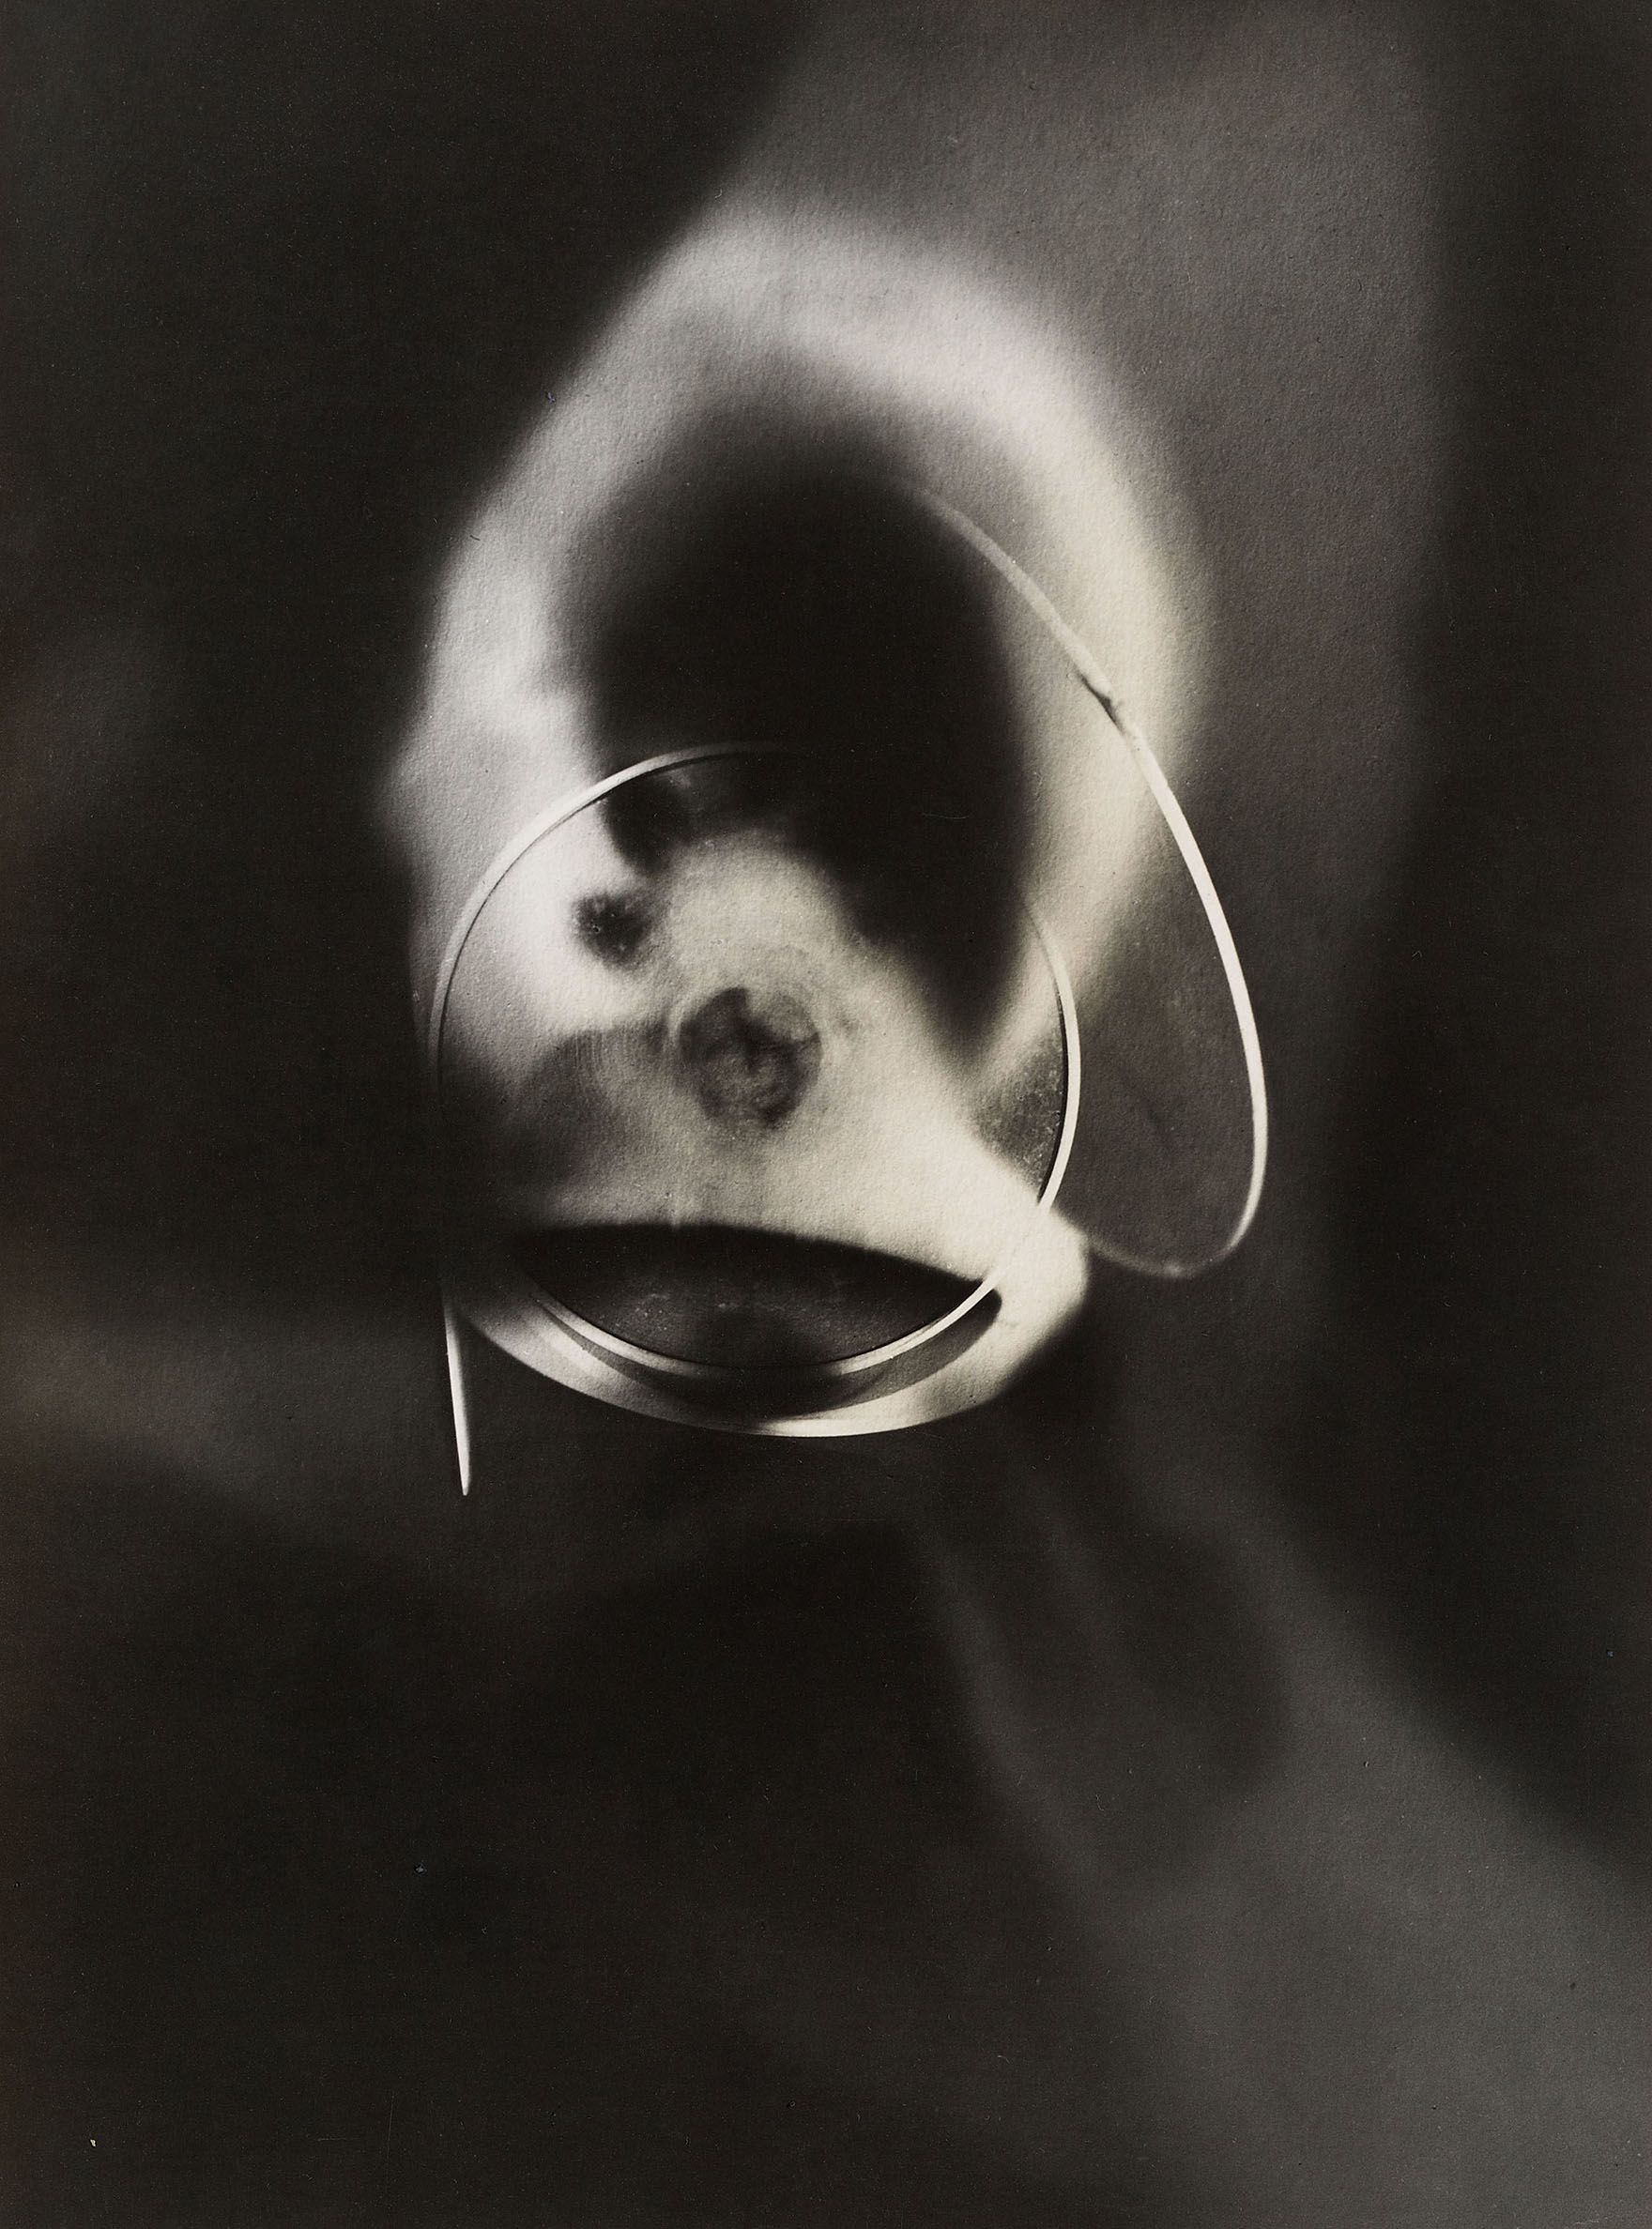 Man Ray, Untitled (Rayographs), 1921-1928. 11 gelatin silver prints, printed 1963, Estimate € 15,000 – 20,000